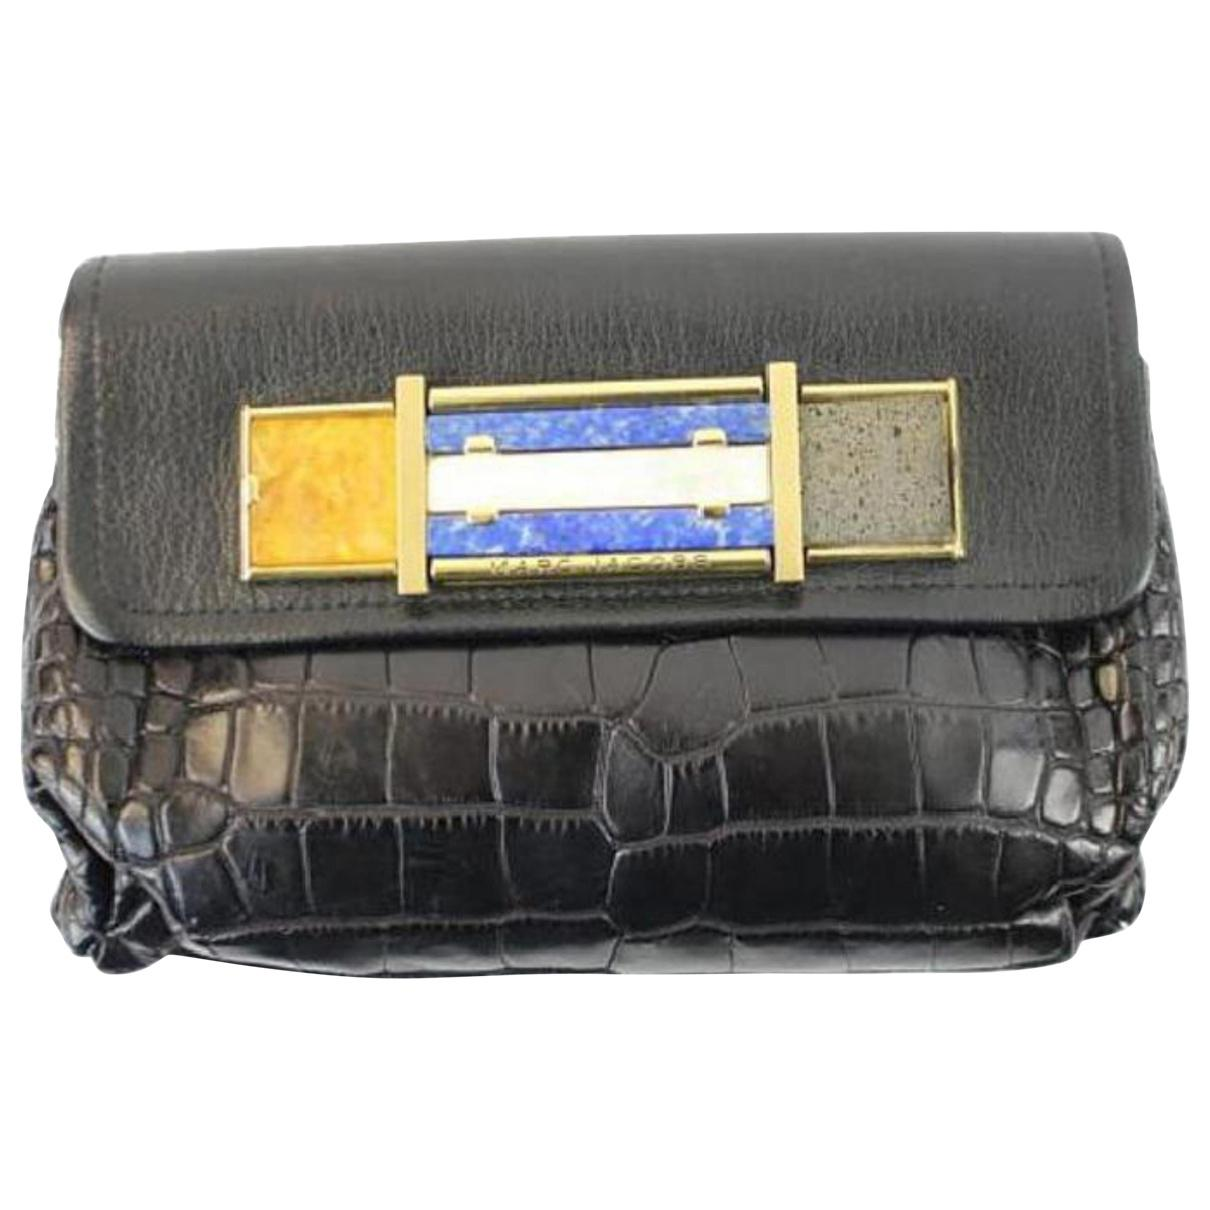 Marc Jacobs Pre-owned - Clutch bag flqv0x1y